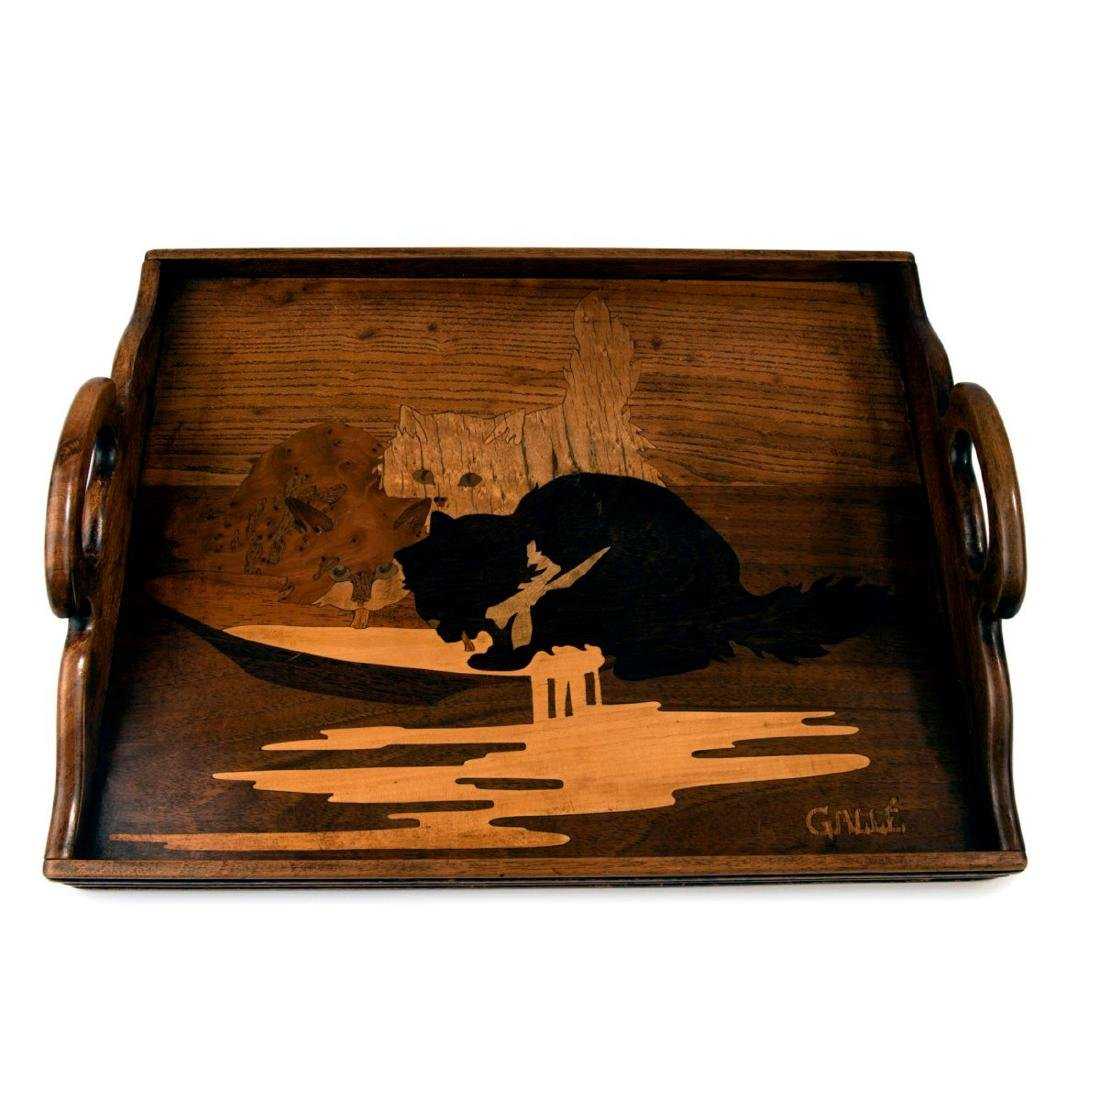 'Trois chats' tray, c. 1905